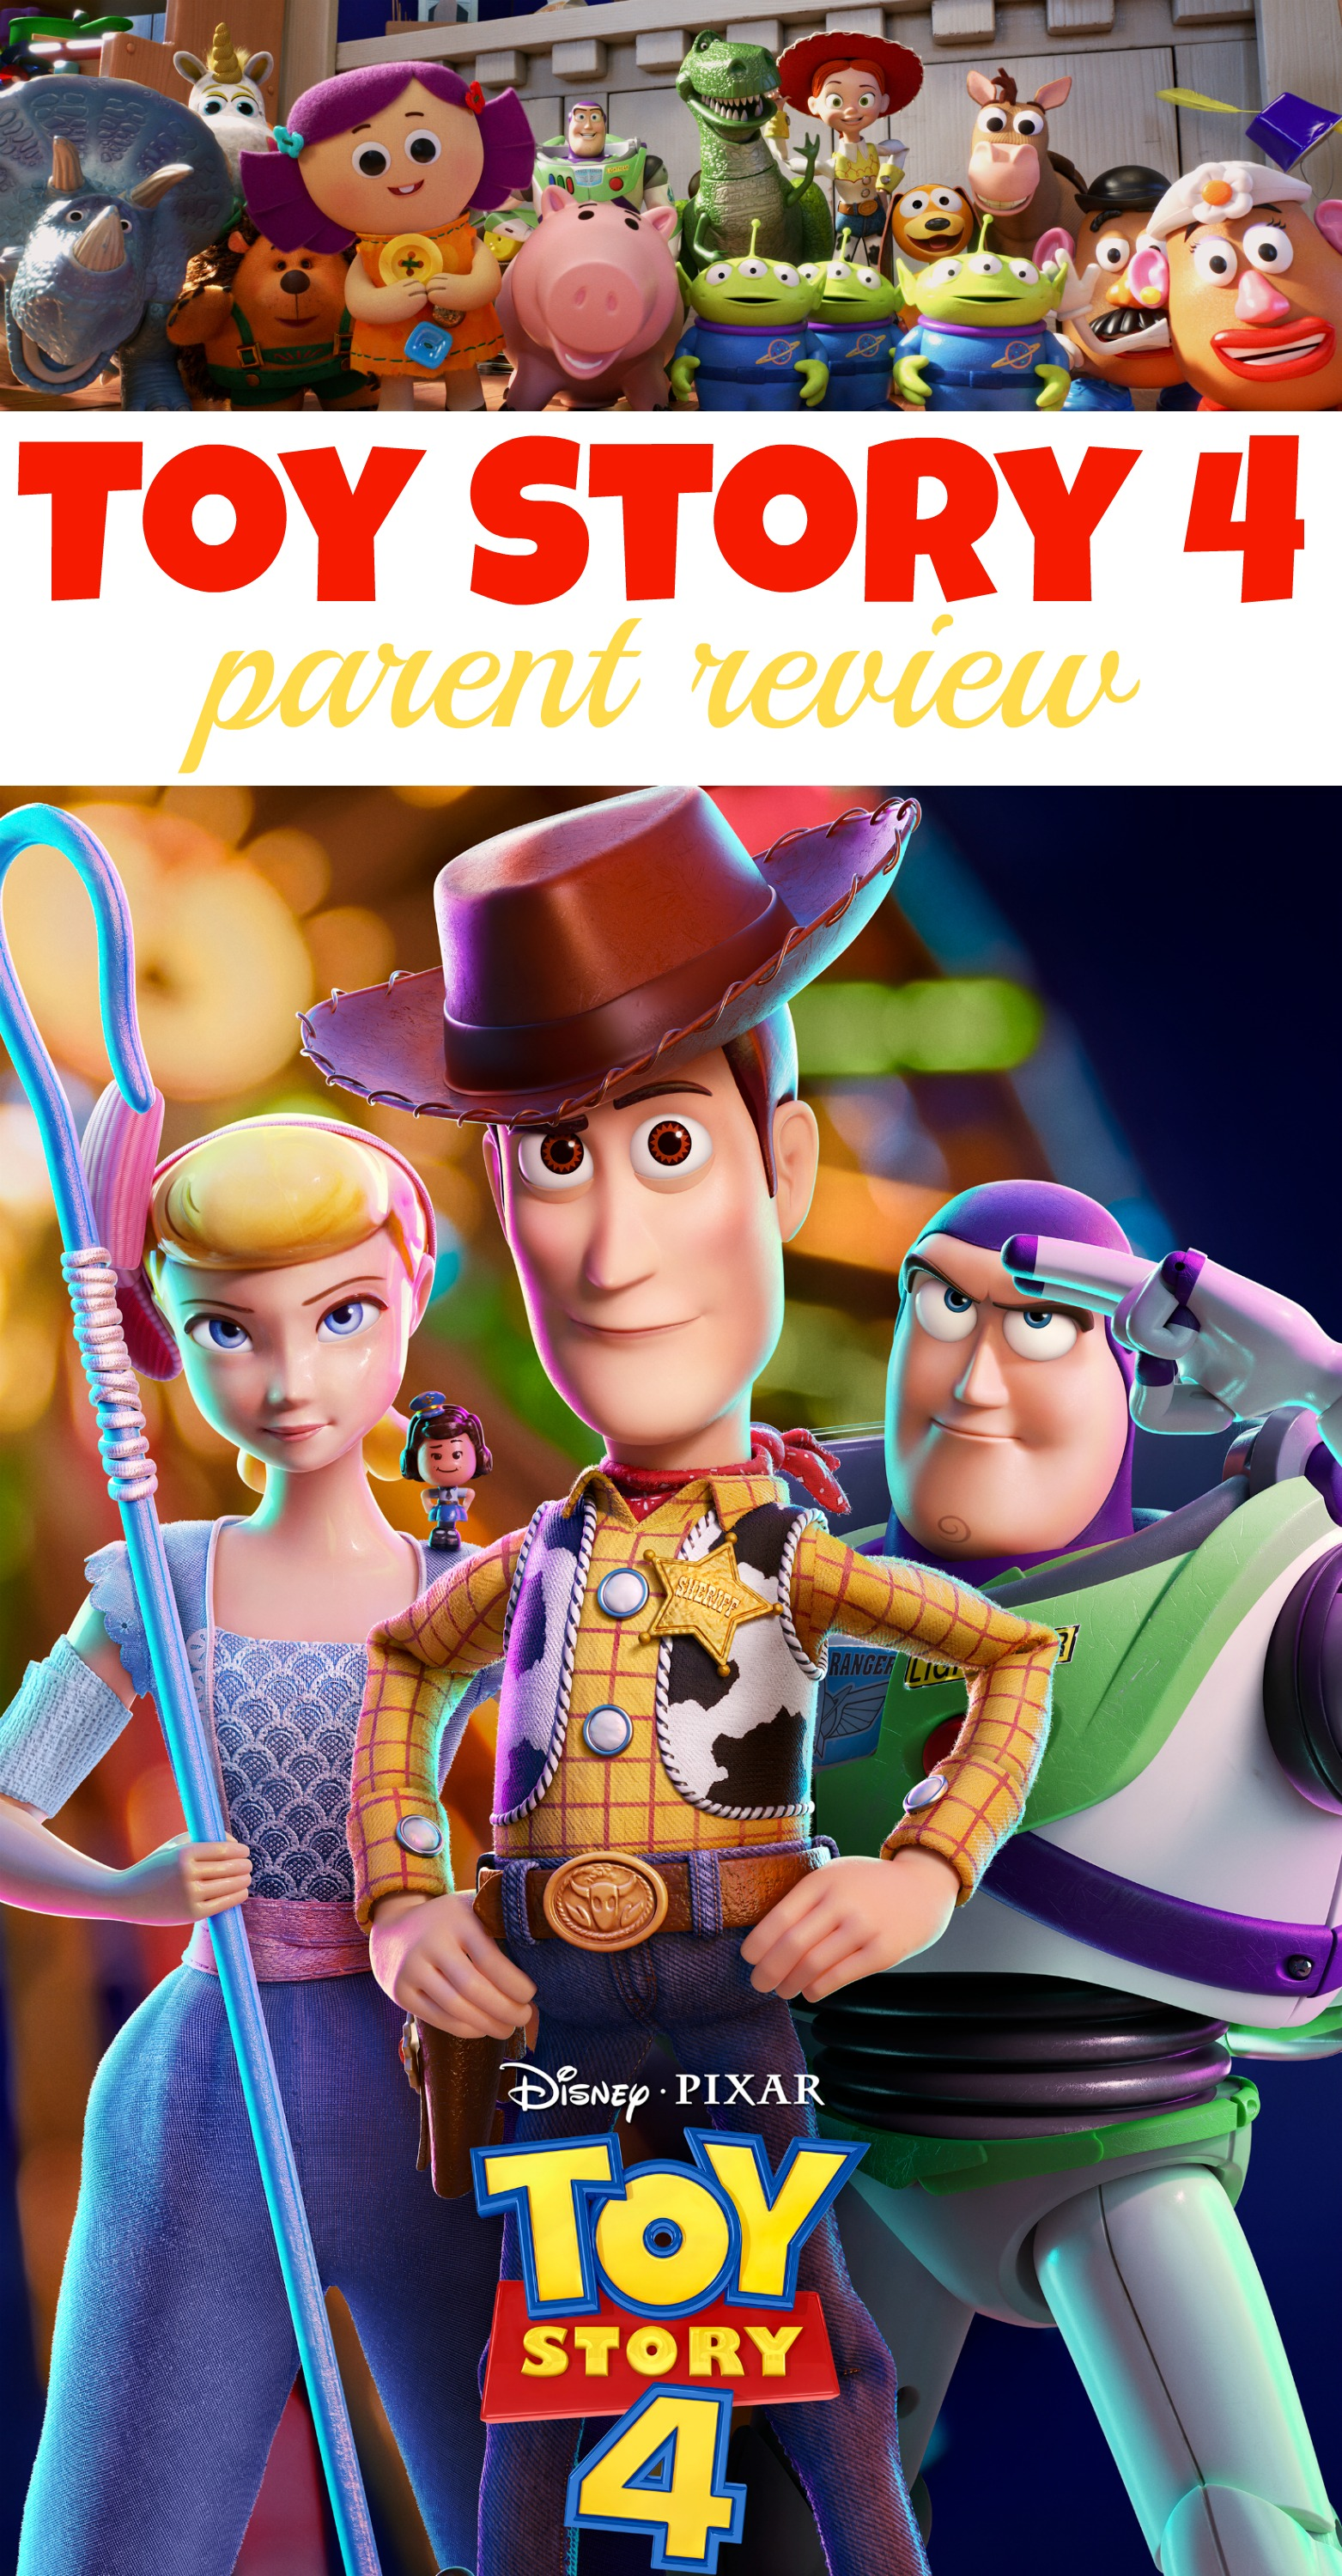 Toy Story 4 Parent Review, Toy Story 4 Kid Friendly, Toy Story 4 Safe for Kids, Toy Story 4 Movie Review, #ToyStory4 #Pixar #DisneyPixar #Movie Review